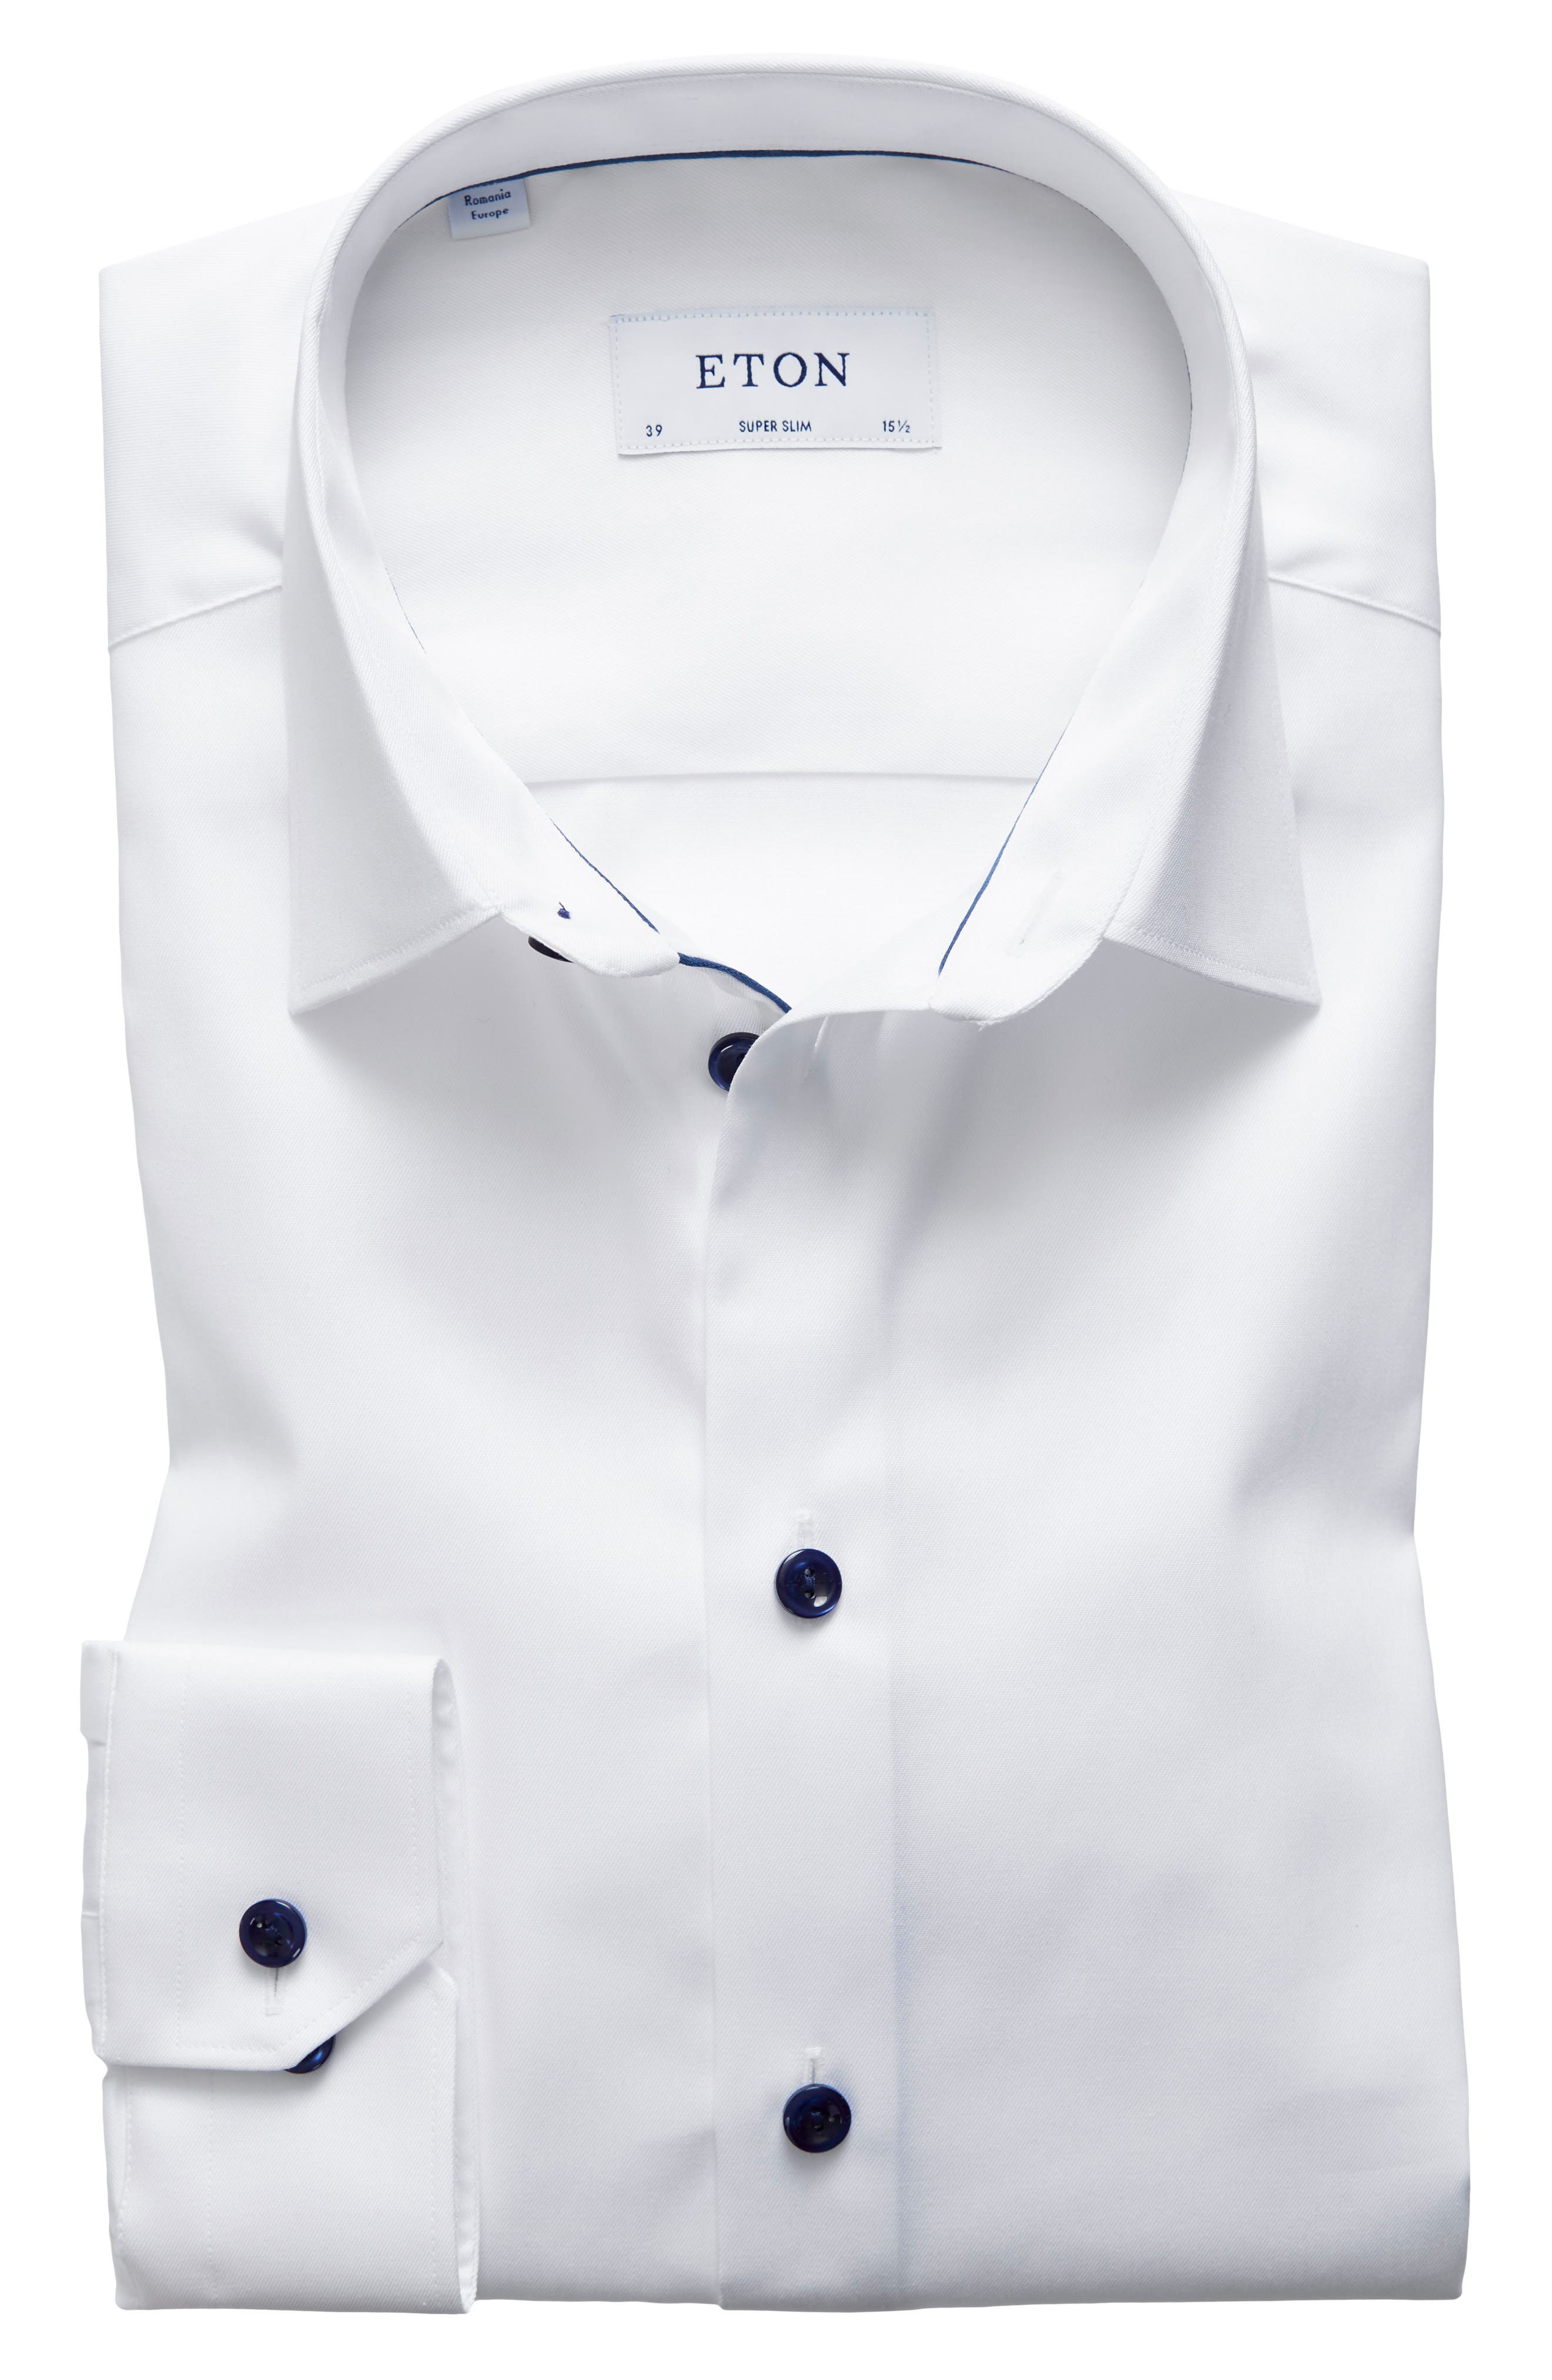 Super Slim Fit Twill Dress Shirt with Navy Details,                         Main,                         color, White/ Navy